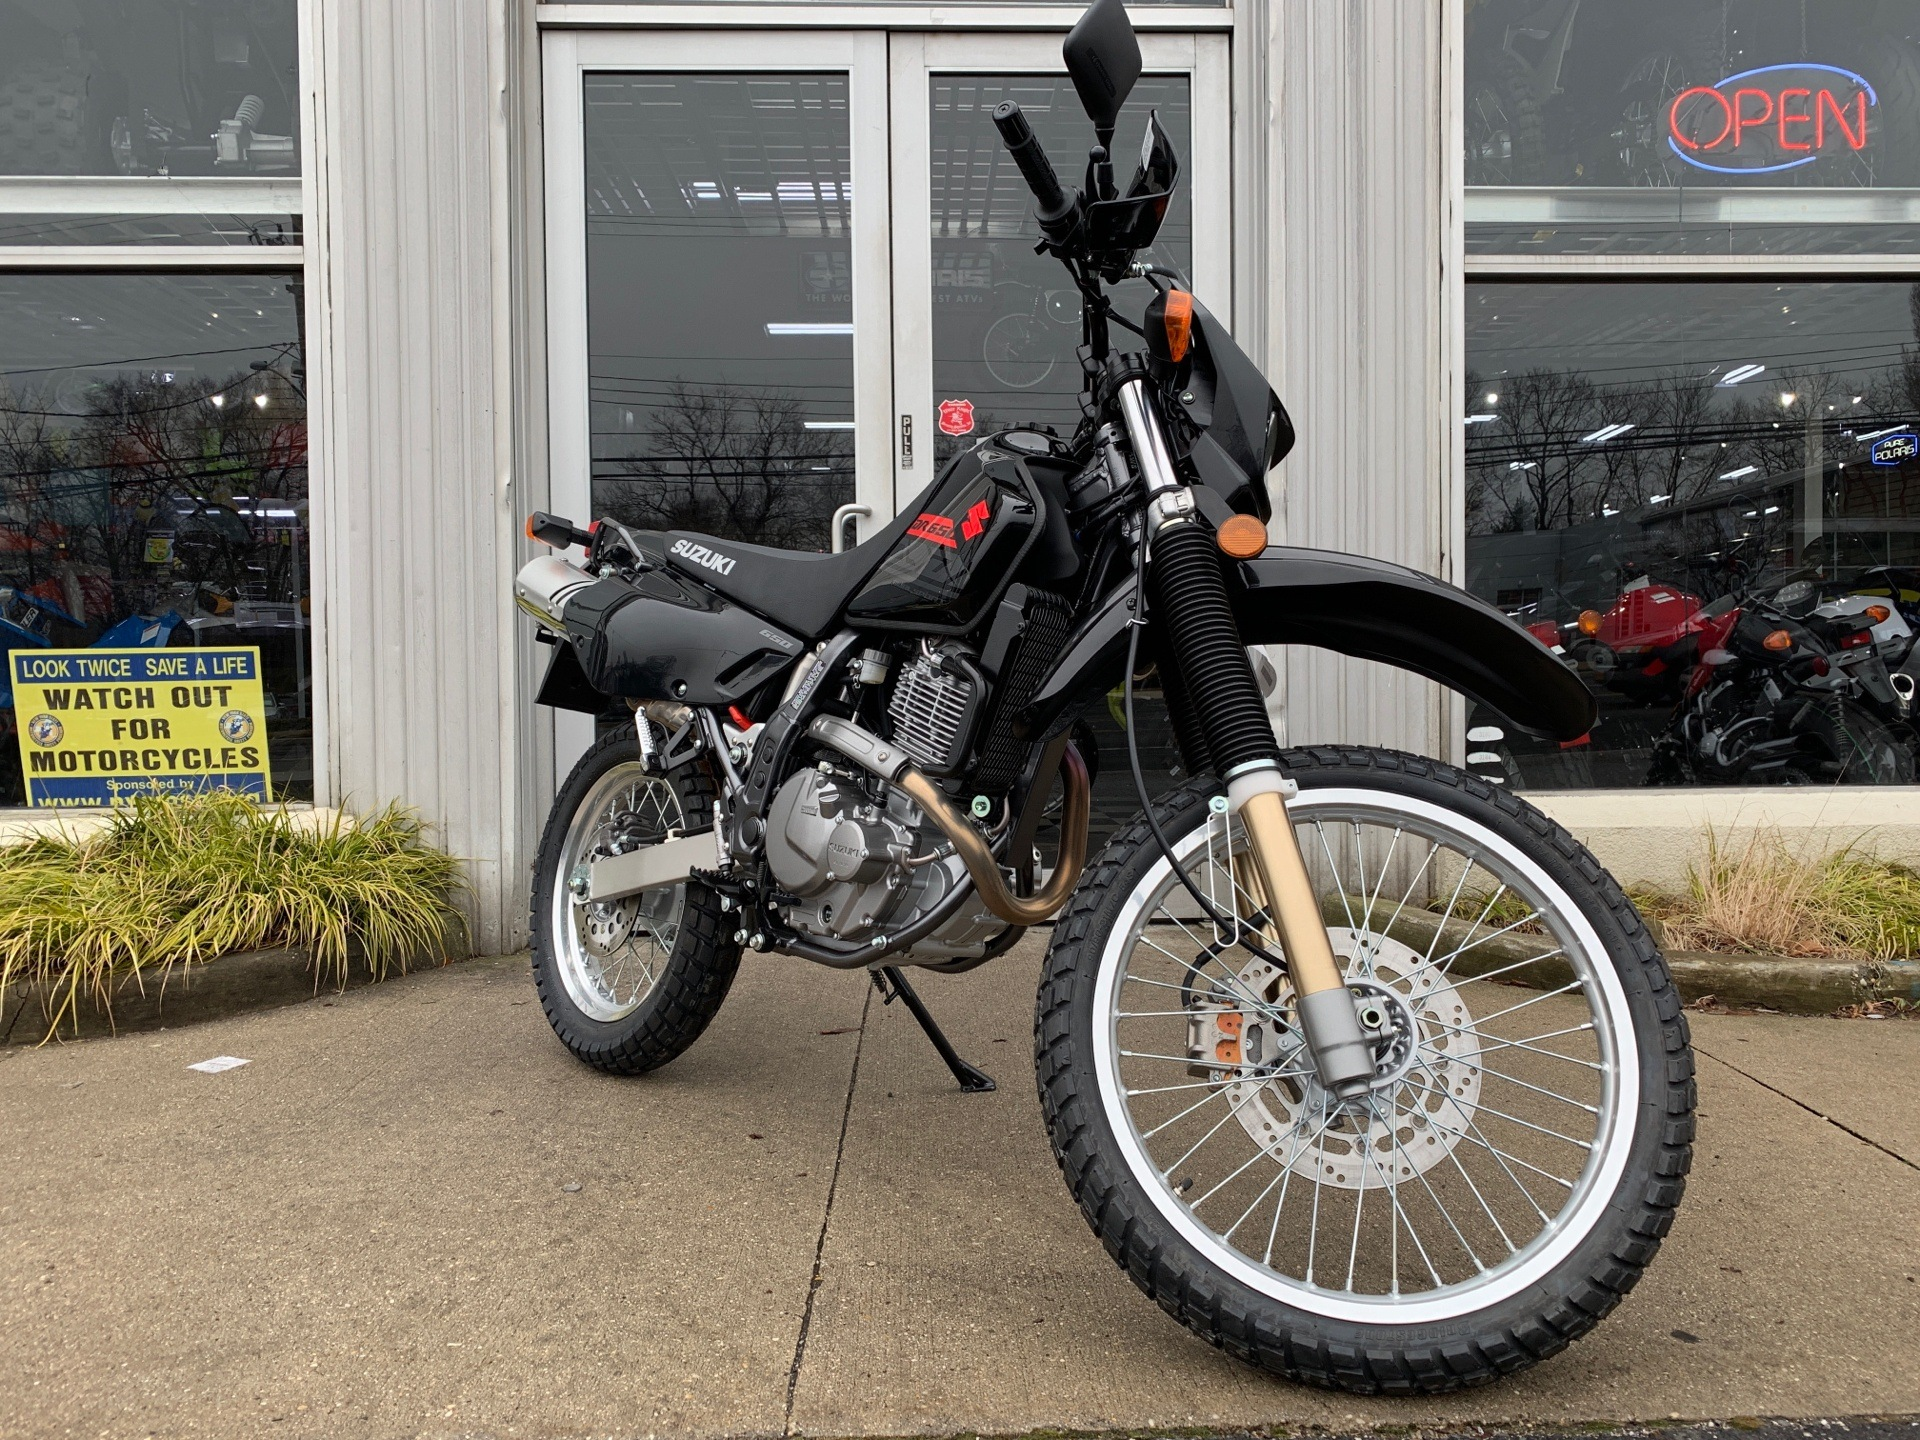 2019 Suzuki DR650S in Huntington Station, New York - Photo 1